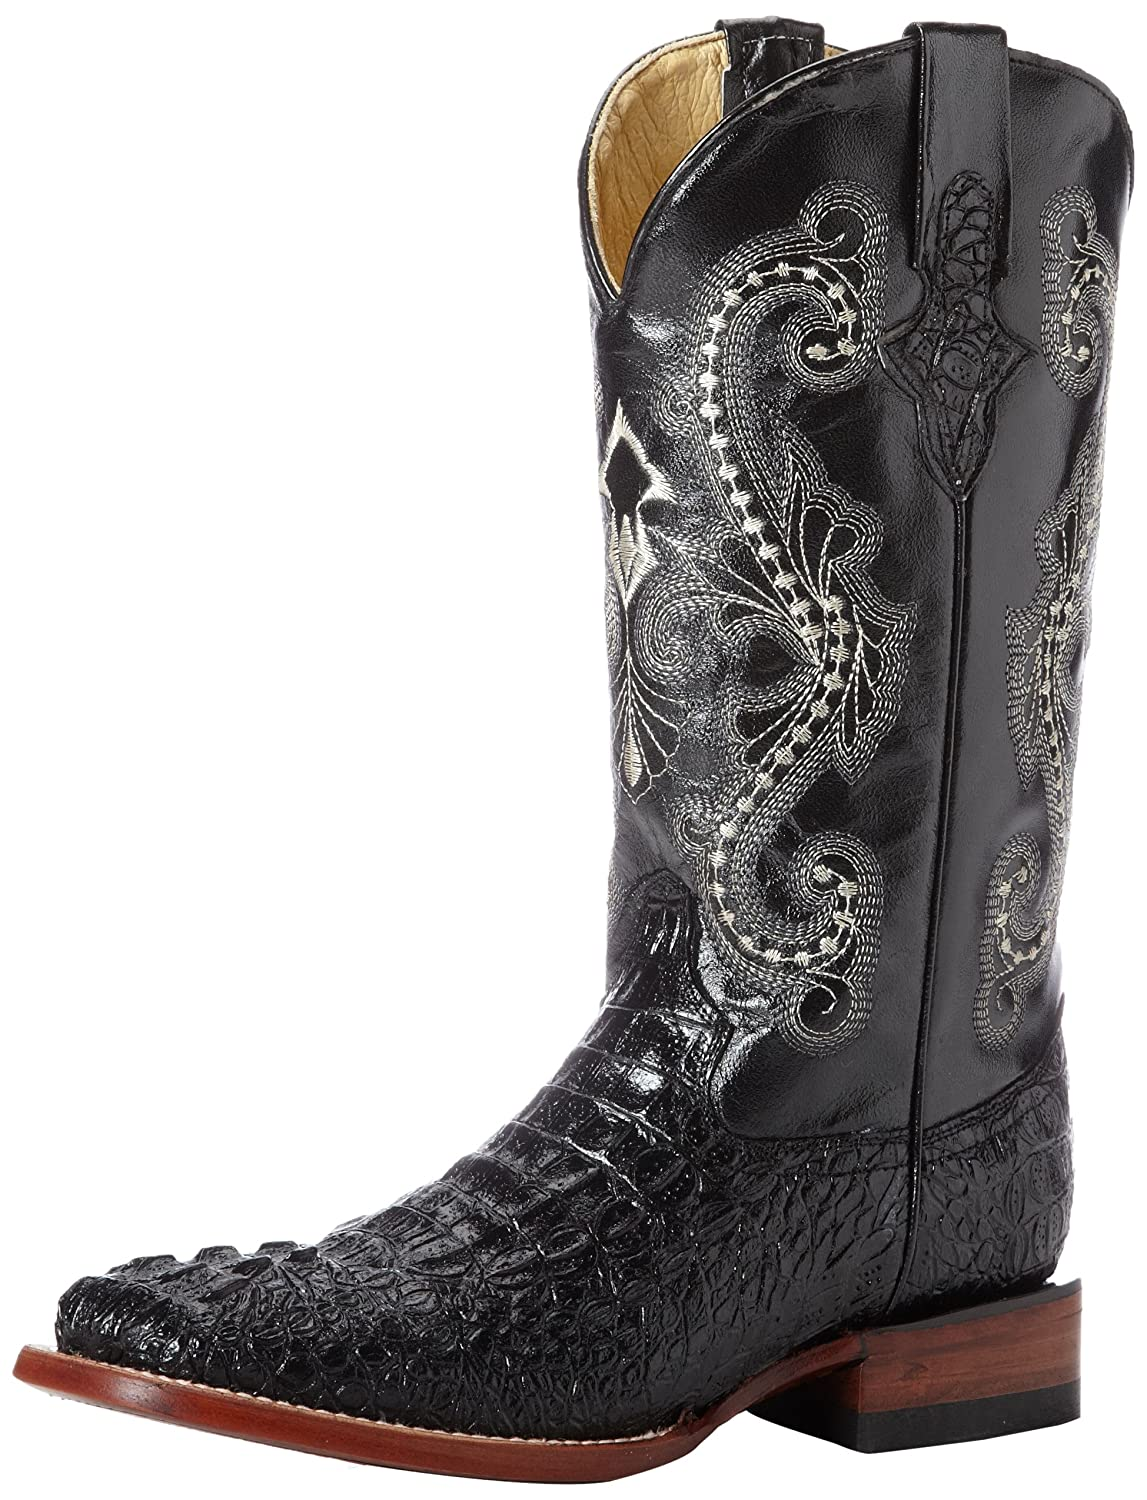 Ferrini Women's Print Crocodile S-Toe Western Boot B00D08KACW 9.5 B(M) US|Black